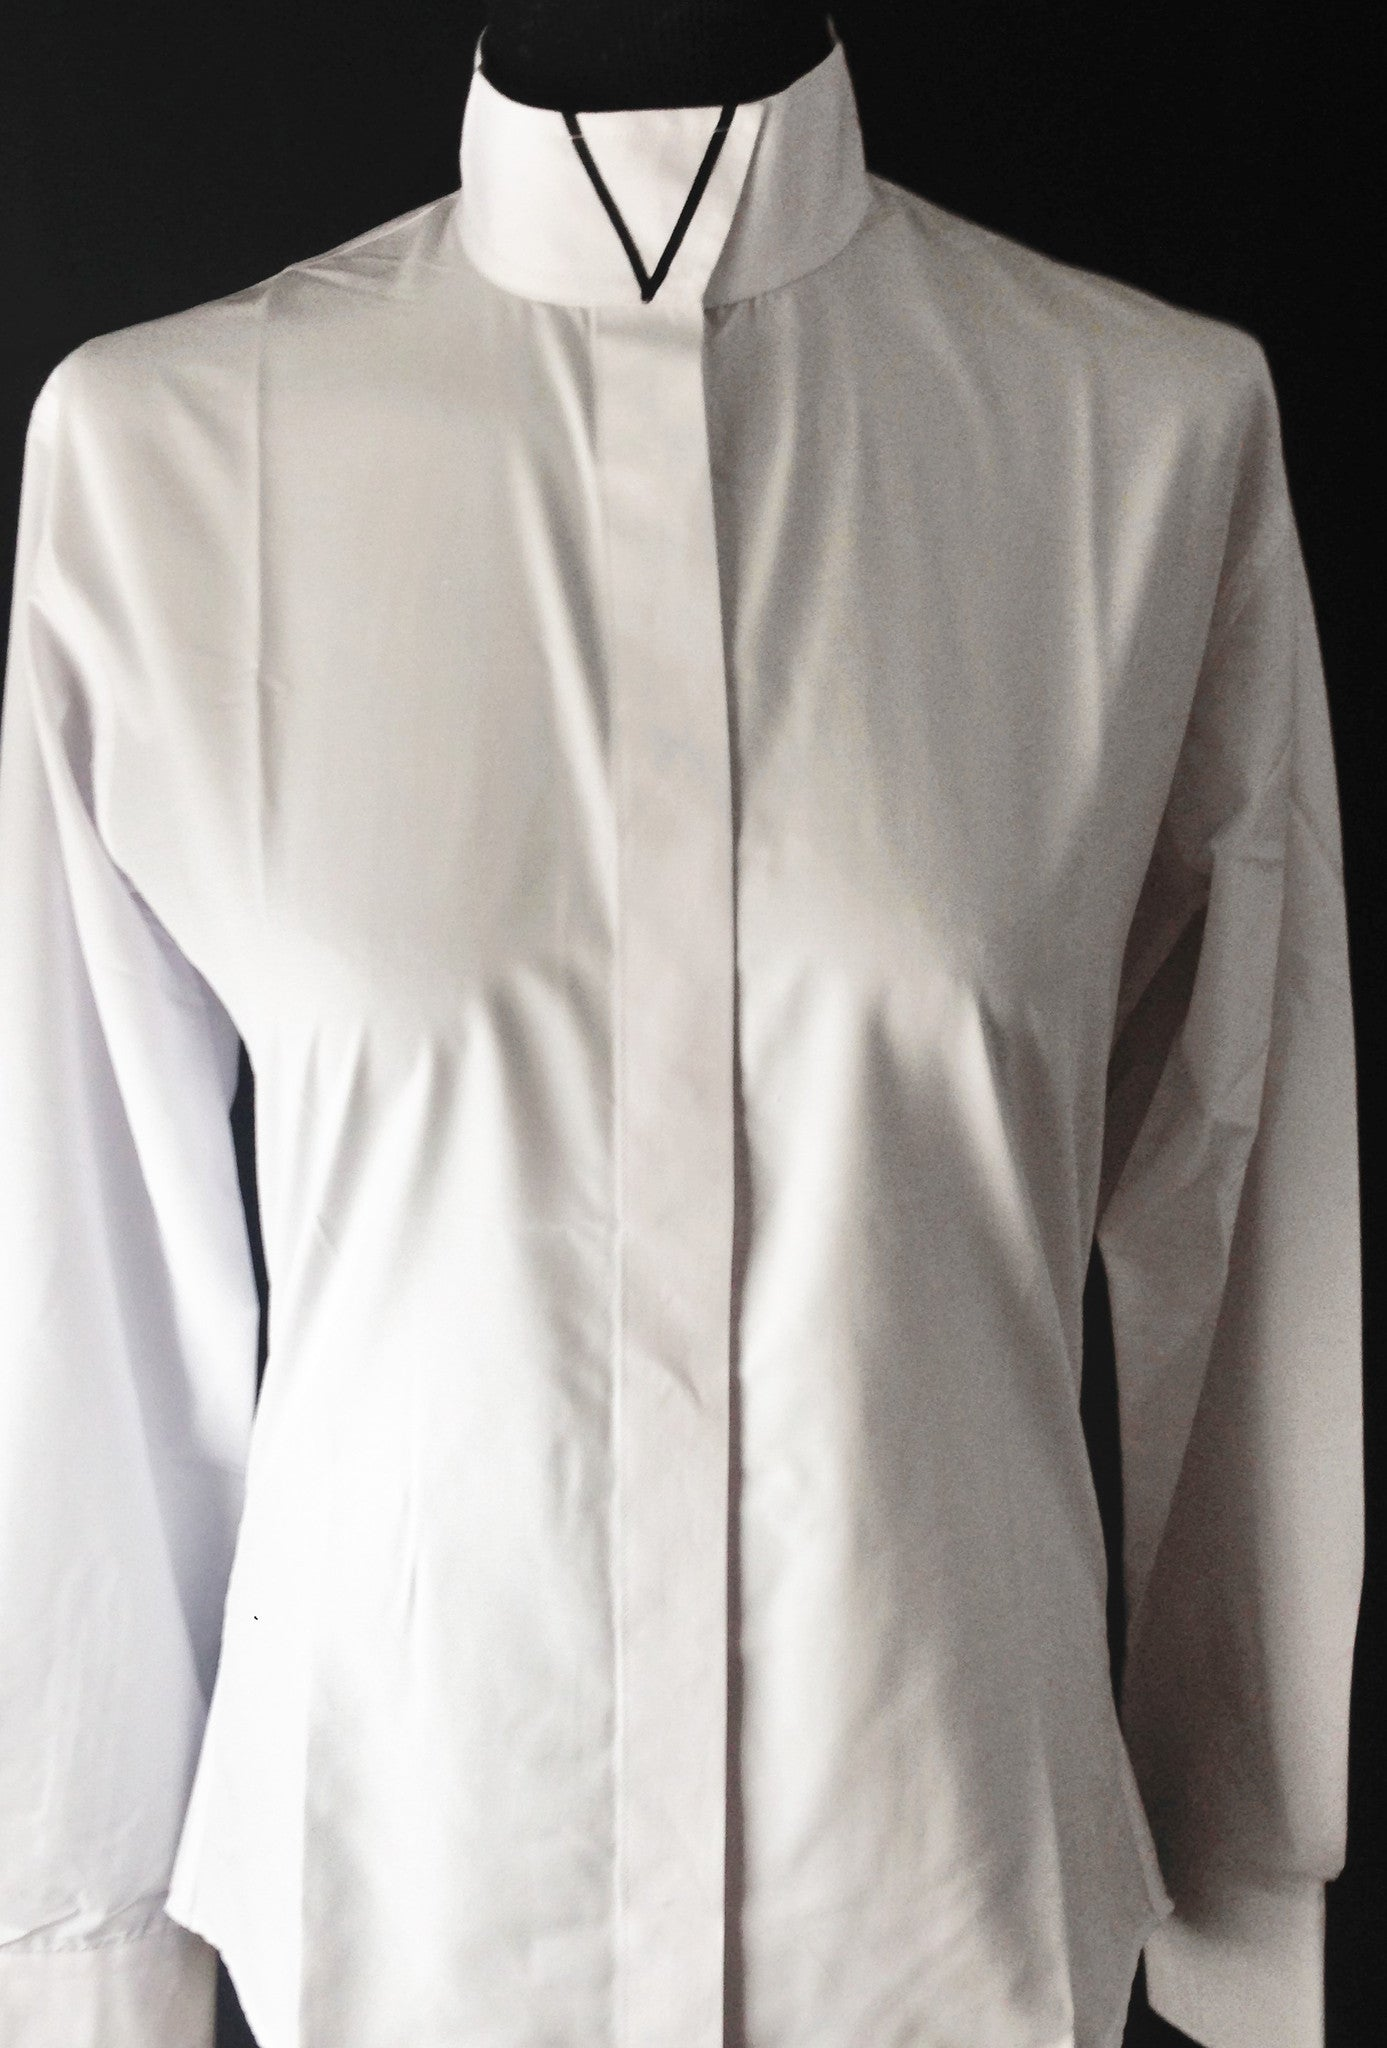 Ribbon V Wrap Collar Coolmax Hunt Shirt - White